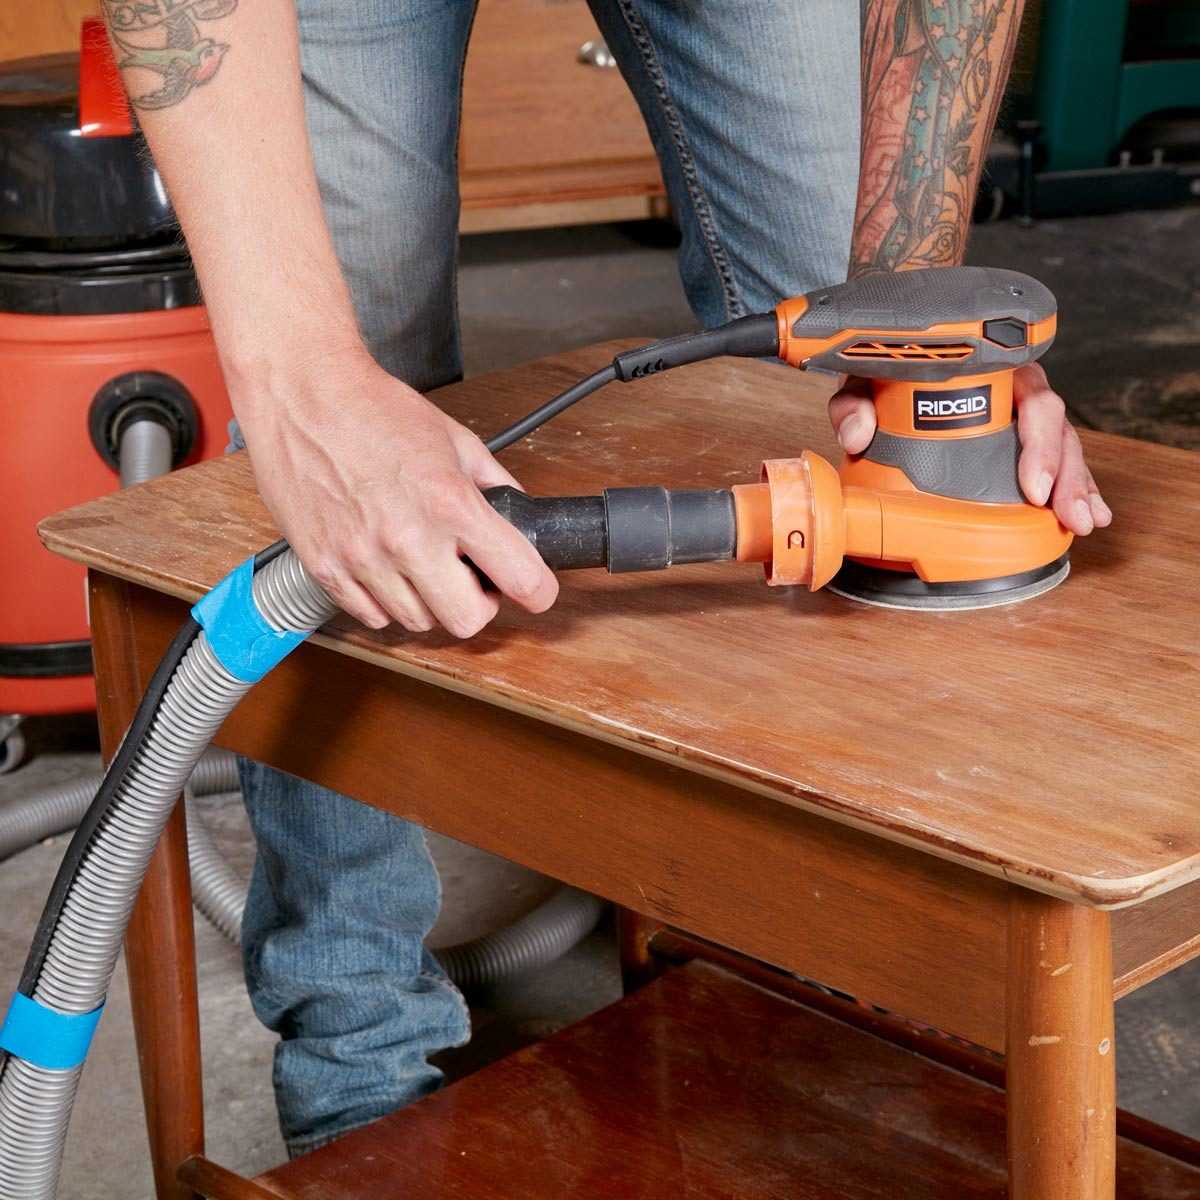 Shop-vacuum-hooked-up-to-random-orbit-sander